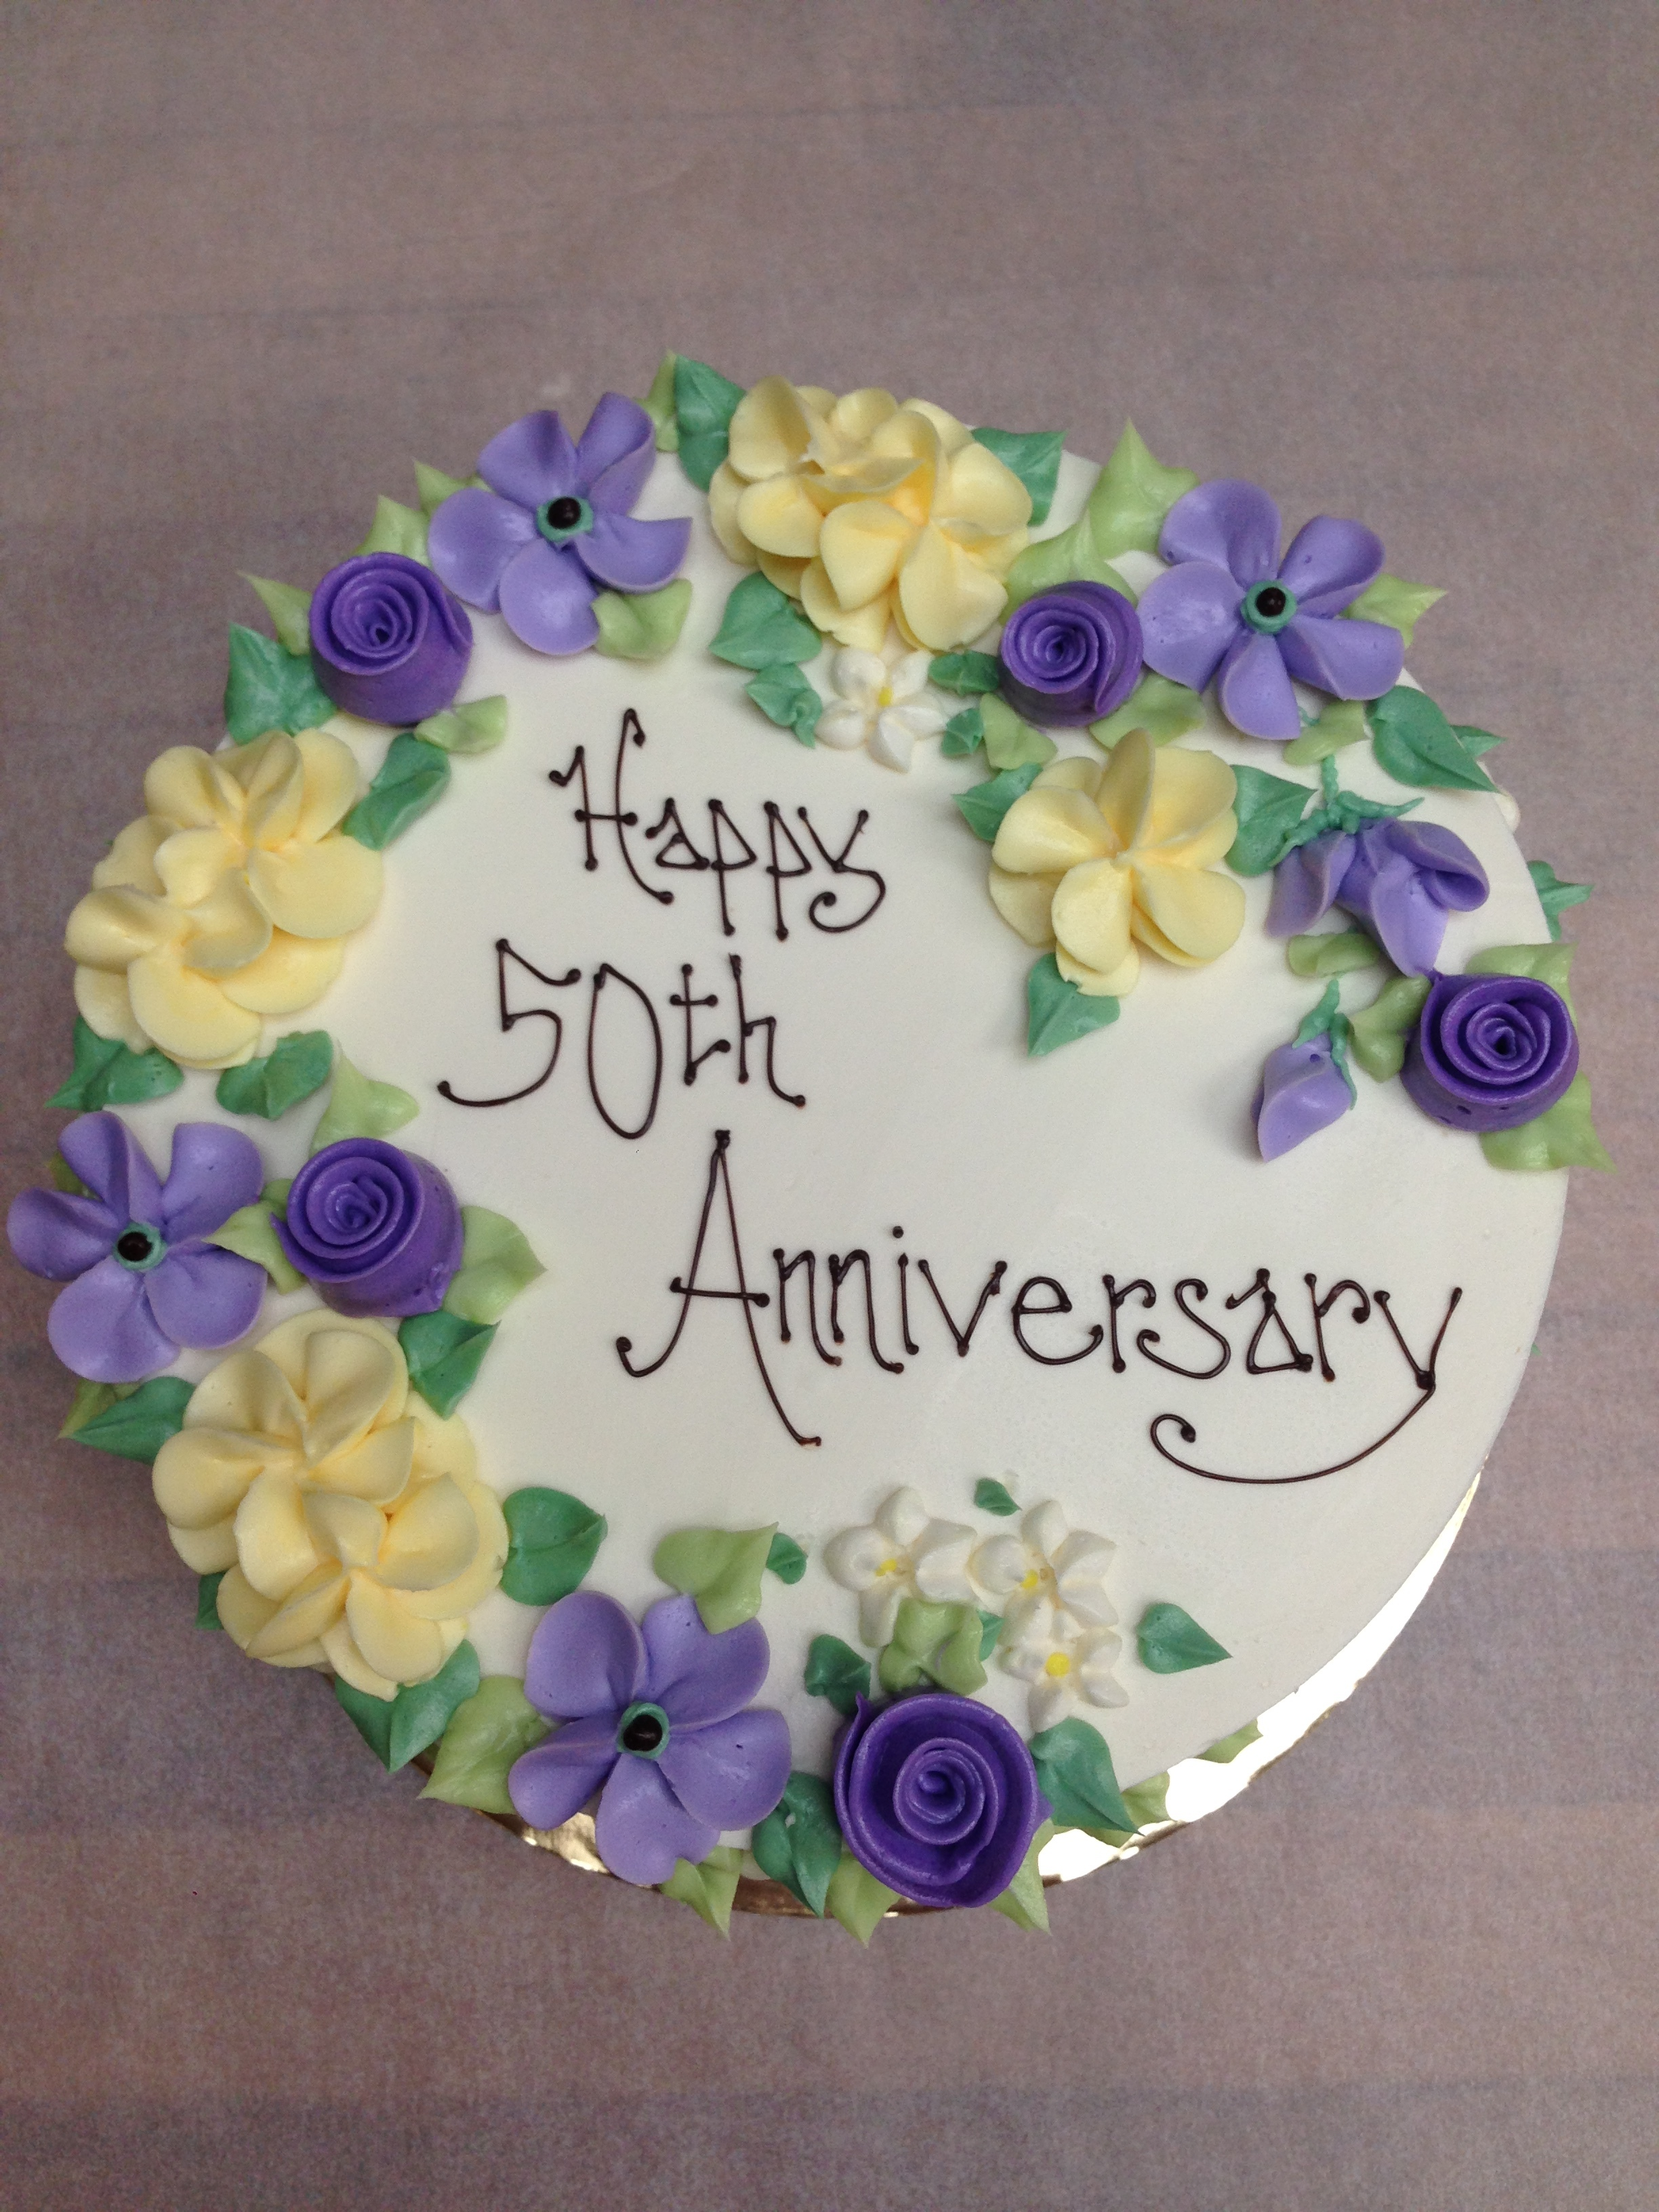 Floral Spray in purple and yellow | 50th anniversary